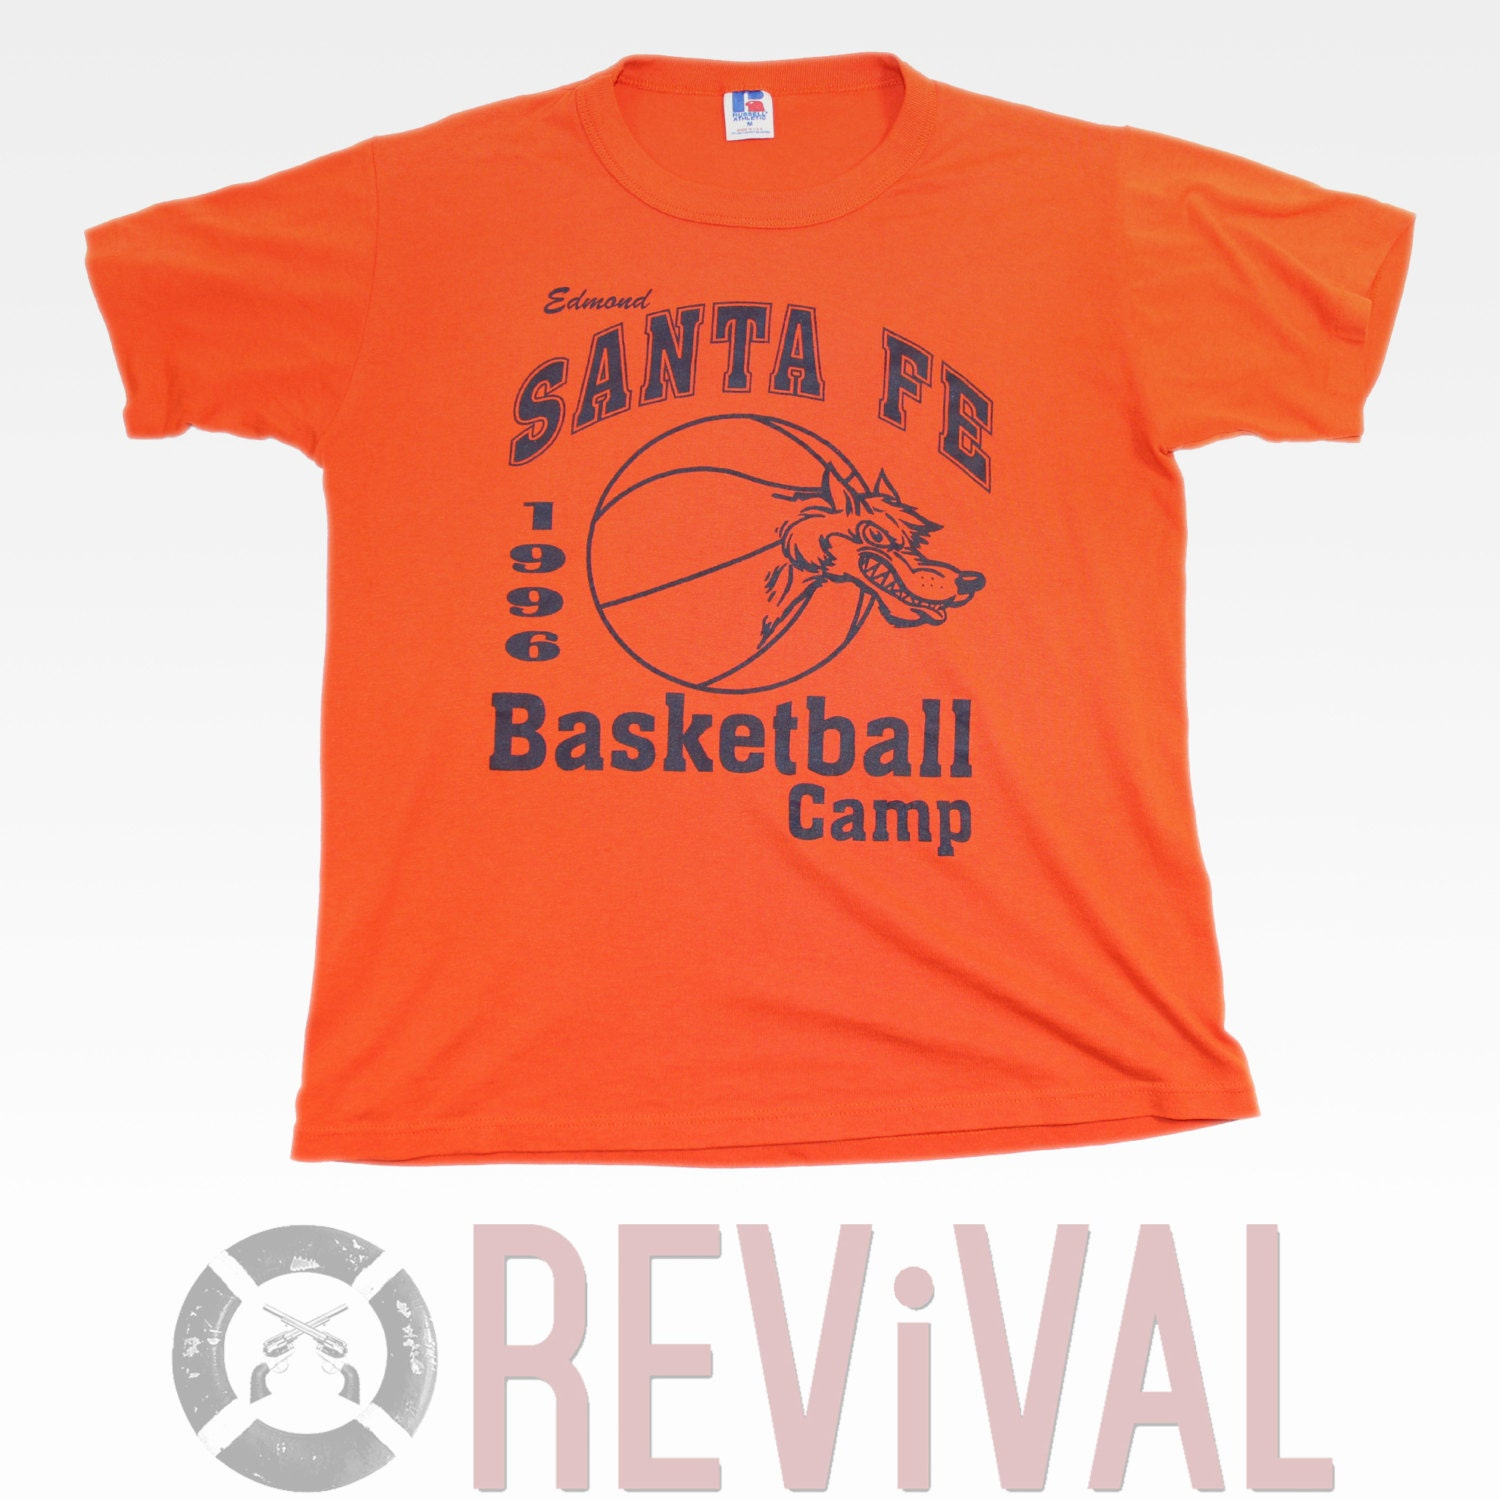 Vintage basketball camp t shirt size m for Retro basketball t shirts